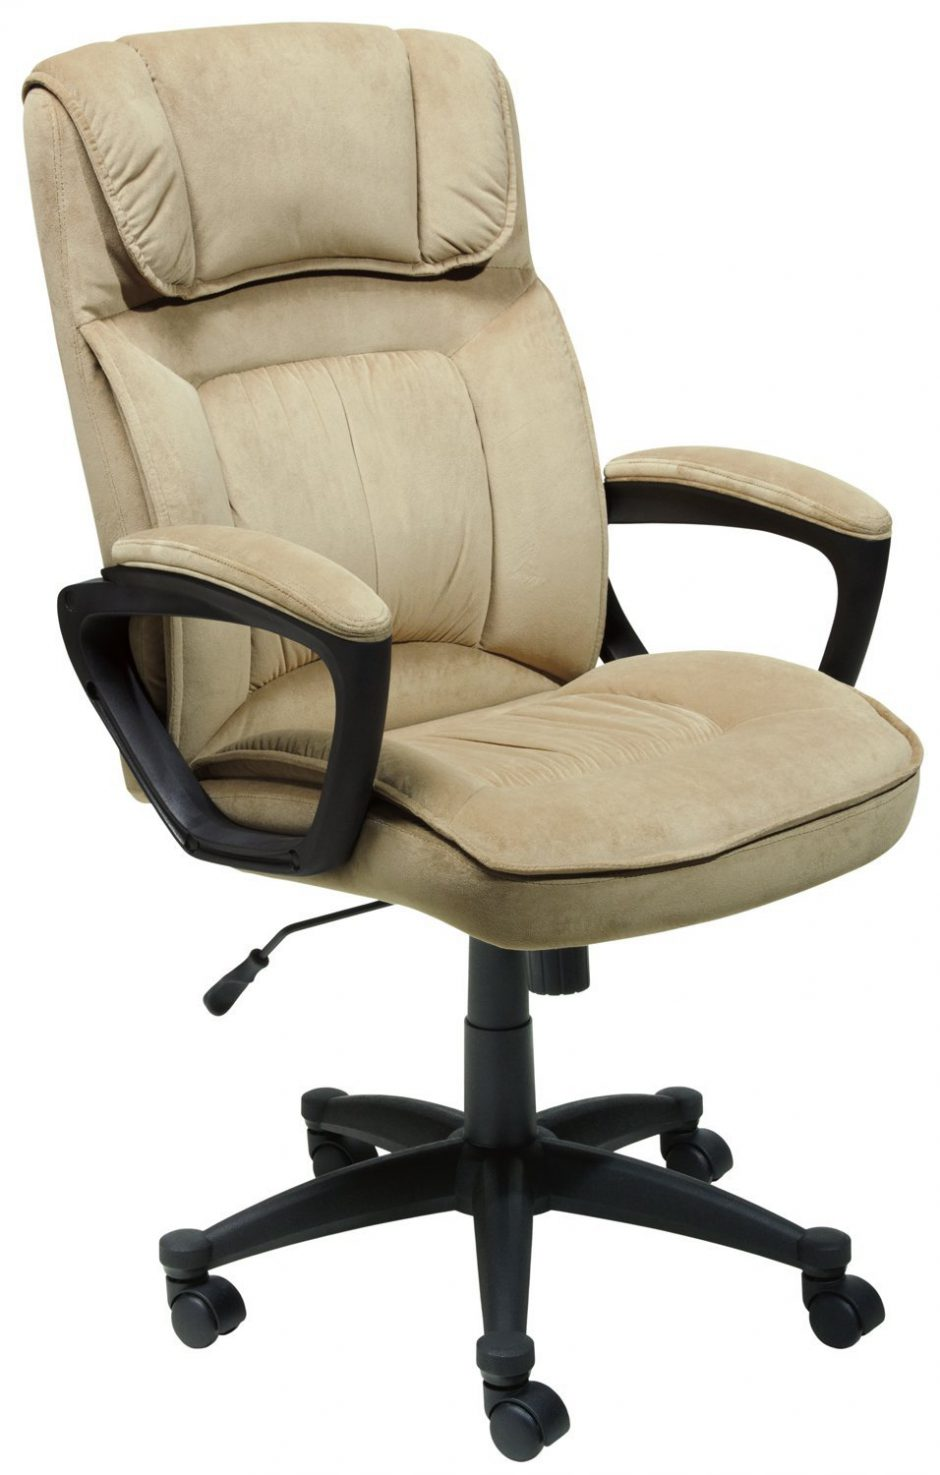 serta-executive-office-chair